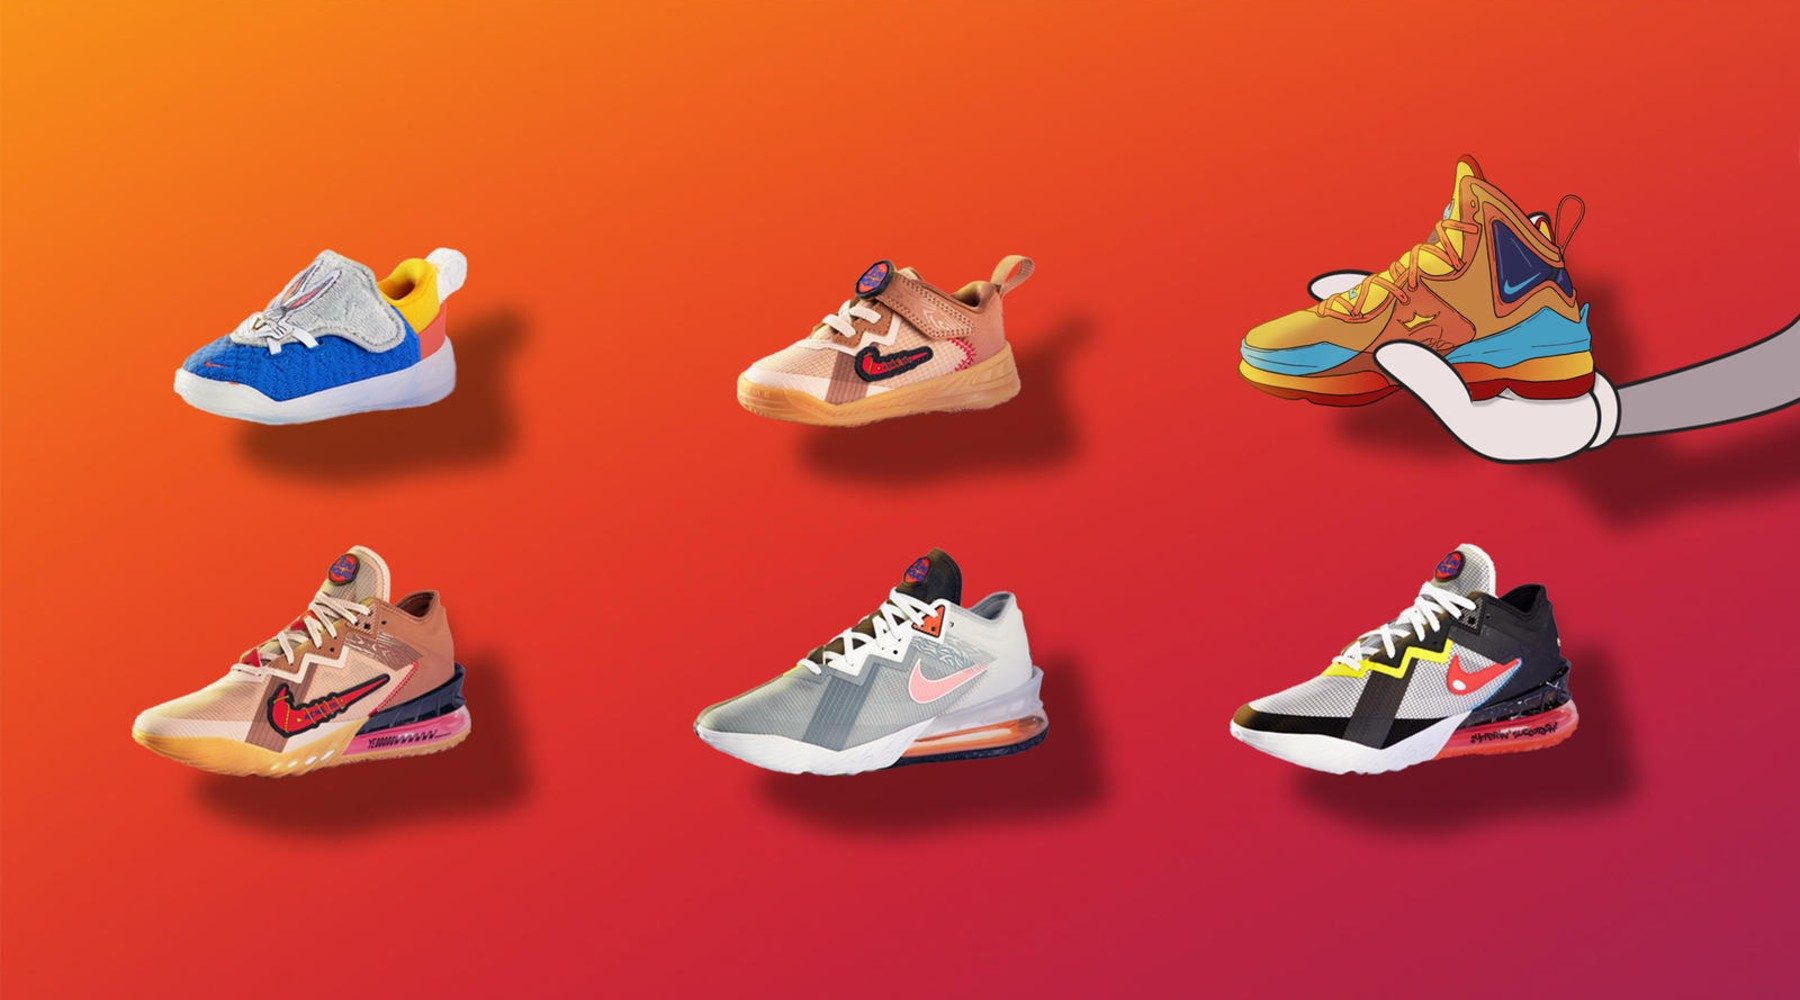 Nike Space Jam sneaker collection